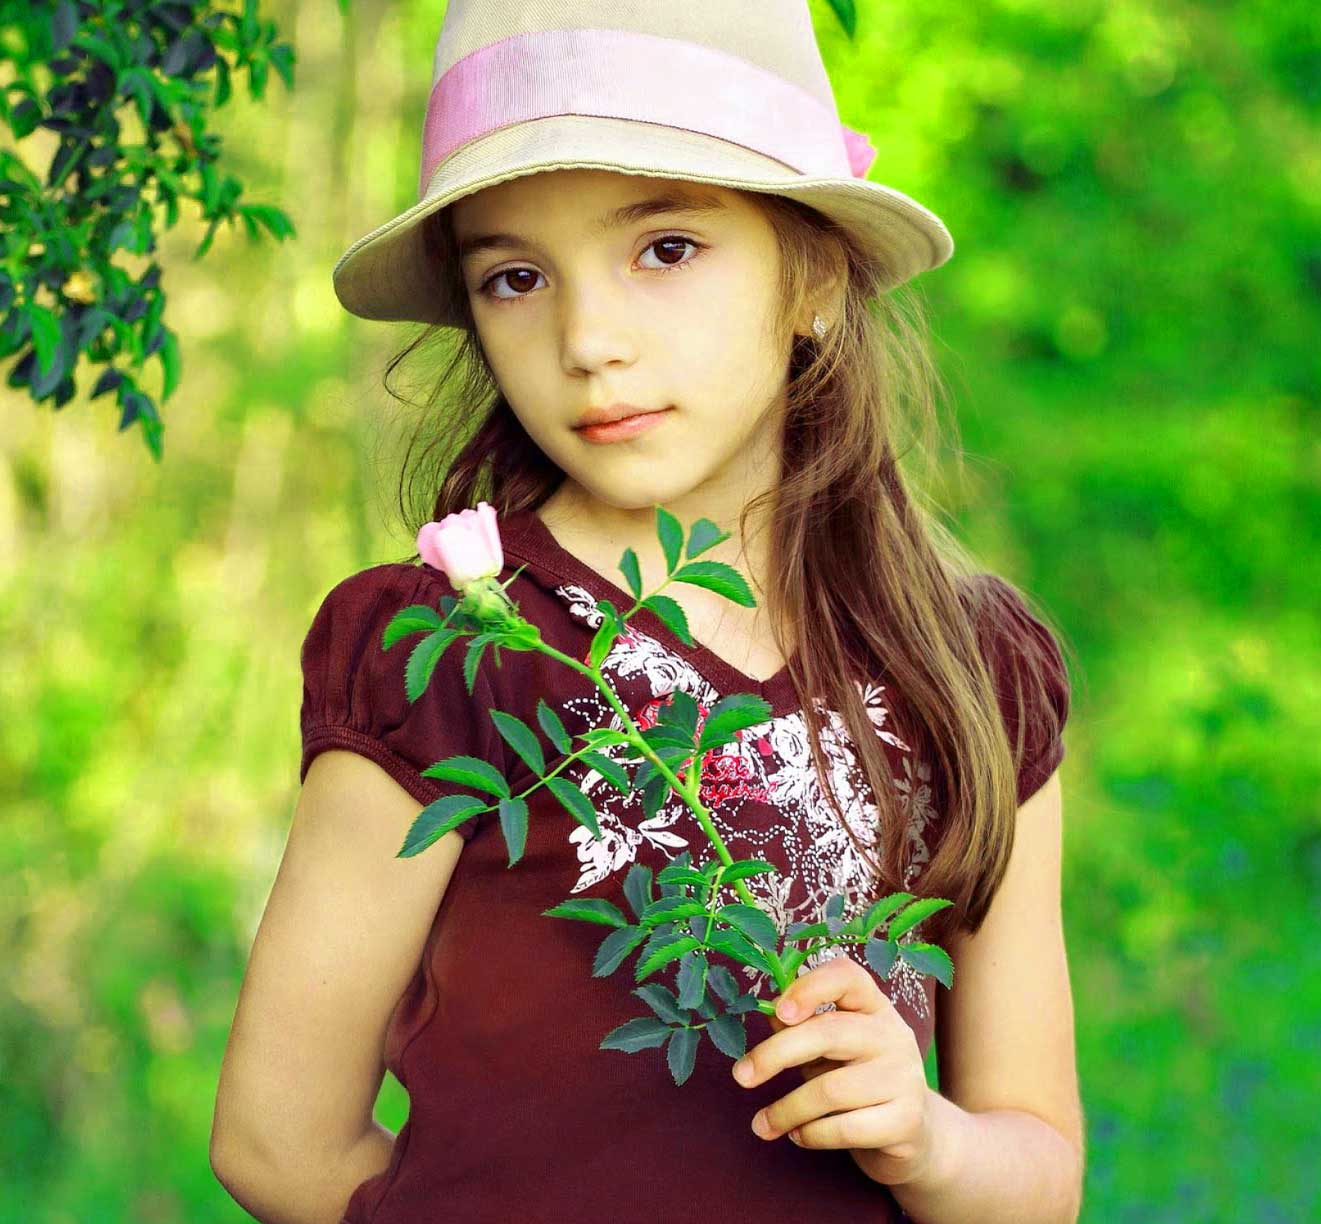 Cute Baby Girl Whatsapp Dp pictures photo hd